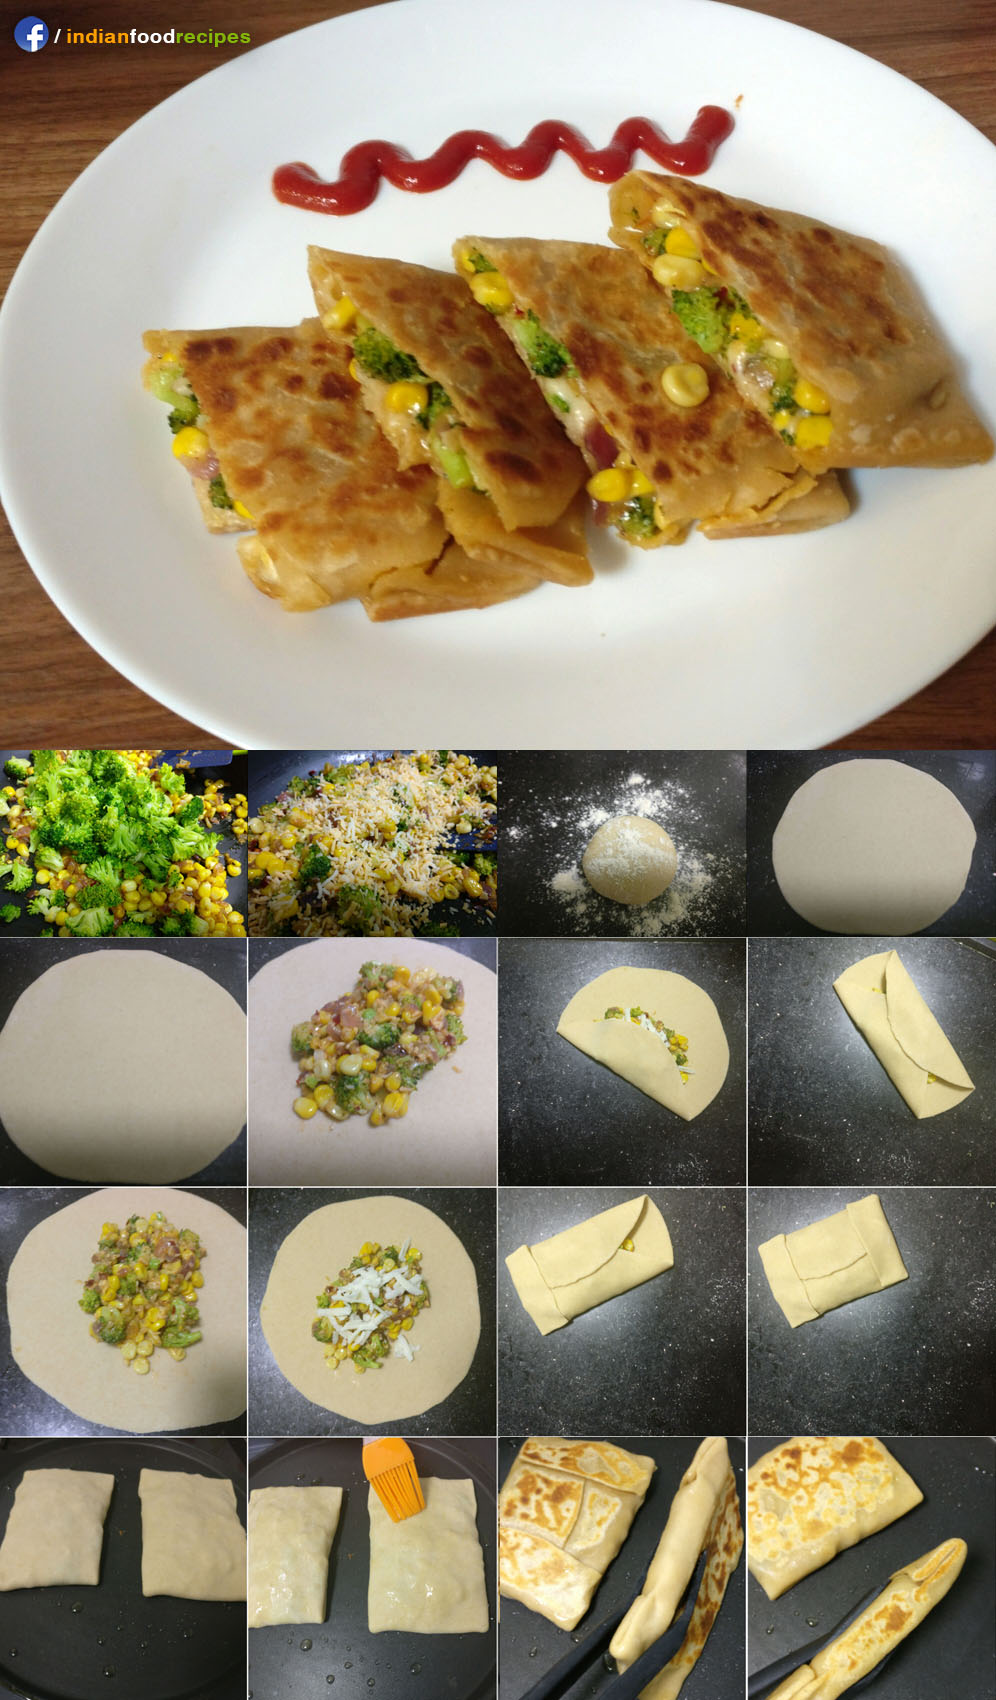 Cheesy corn broccoli pocket recipe step by step